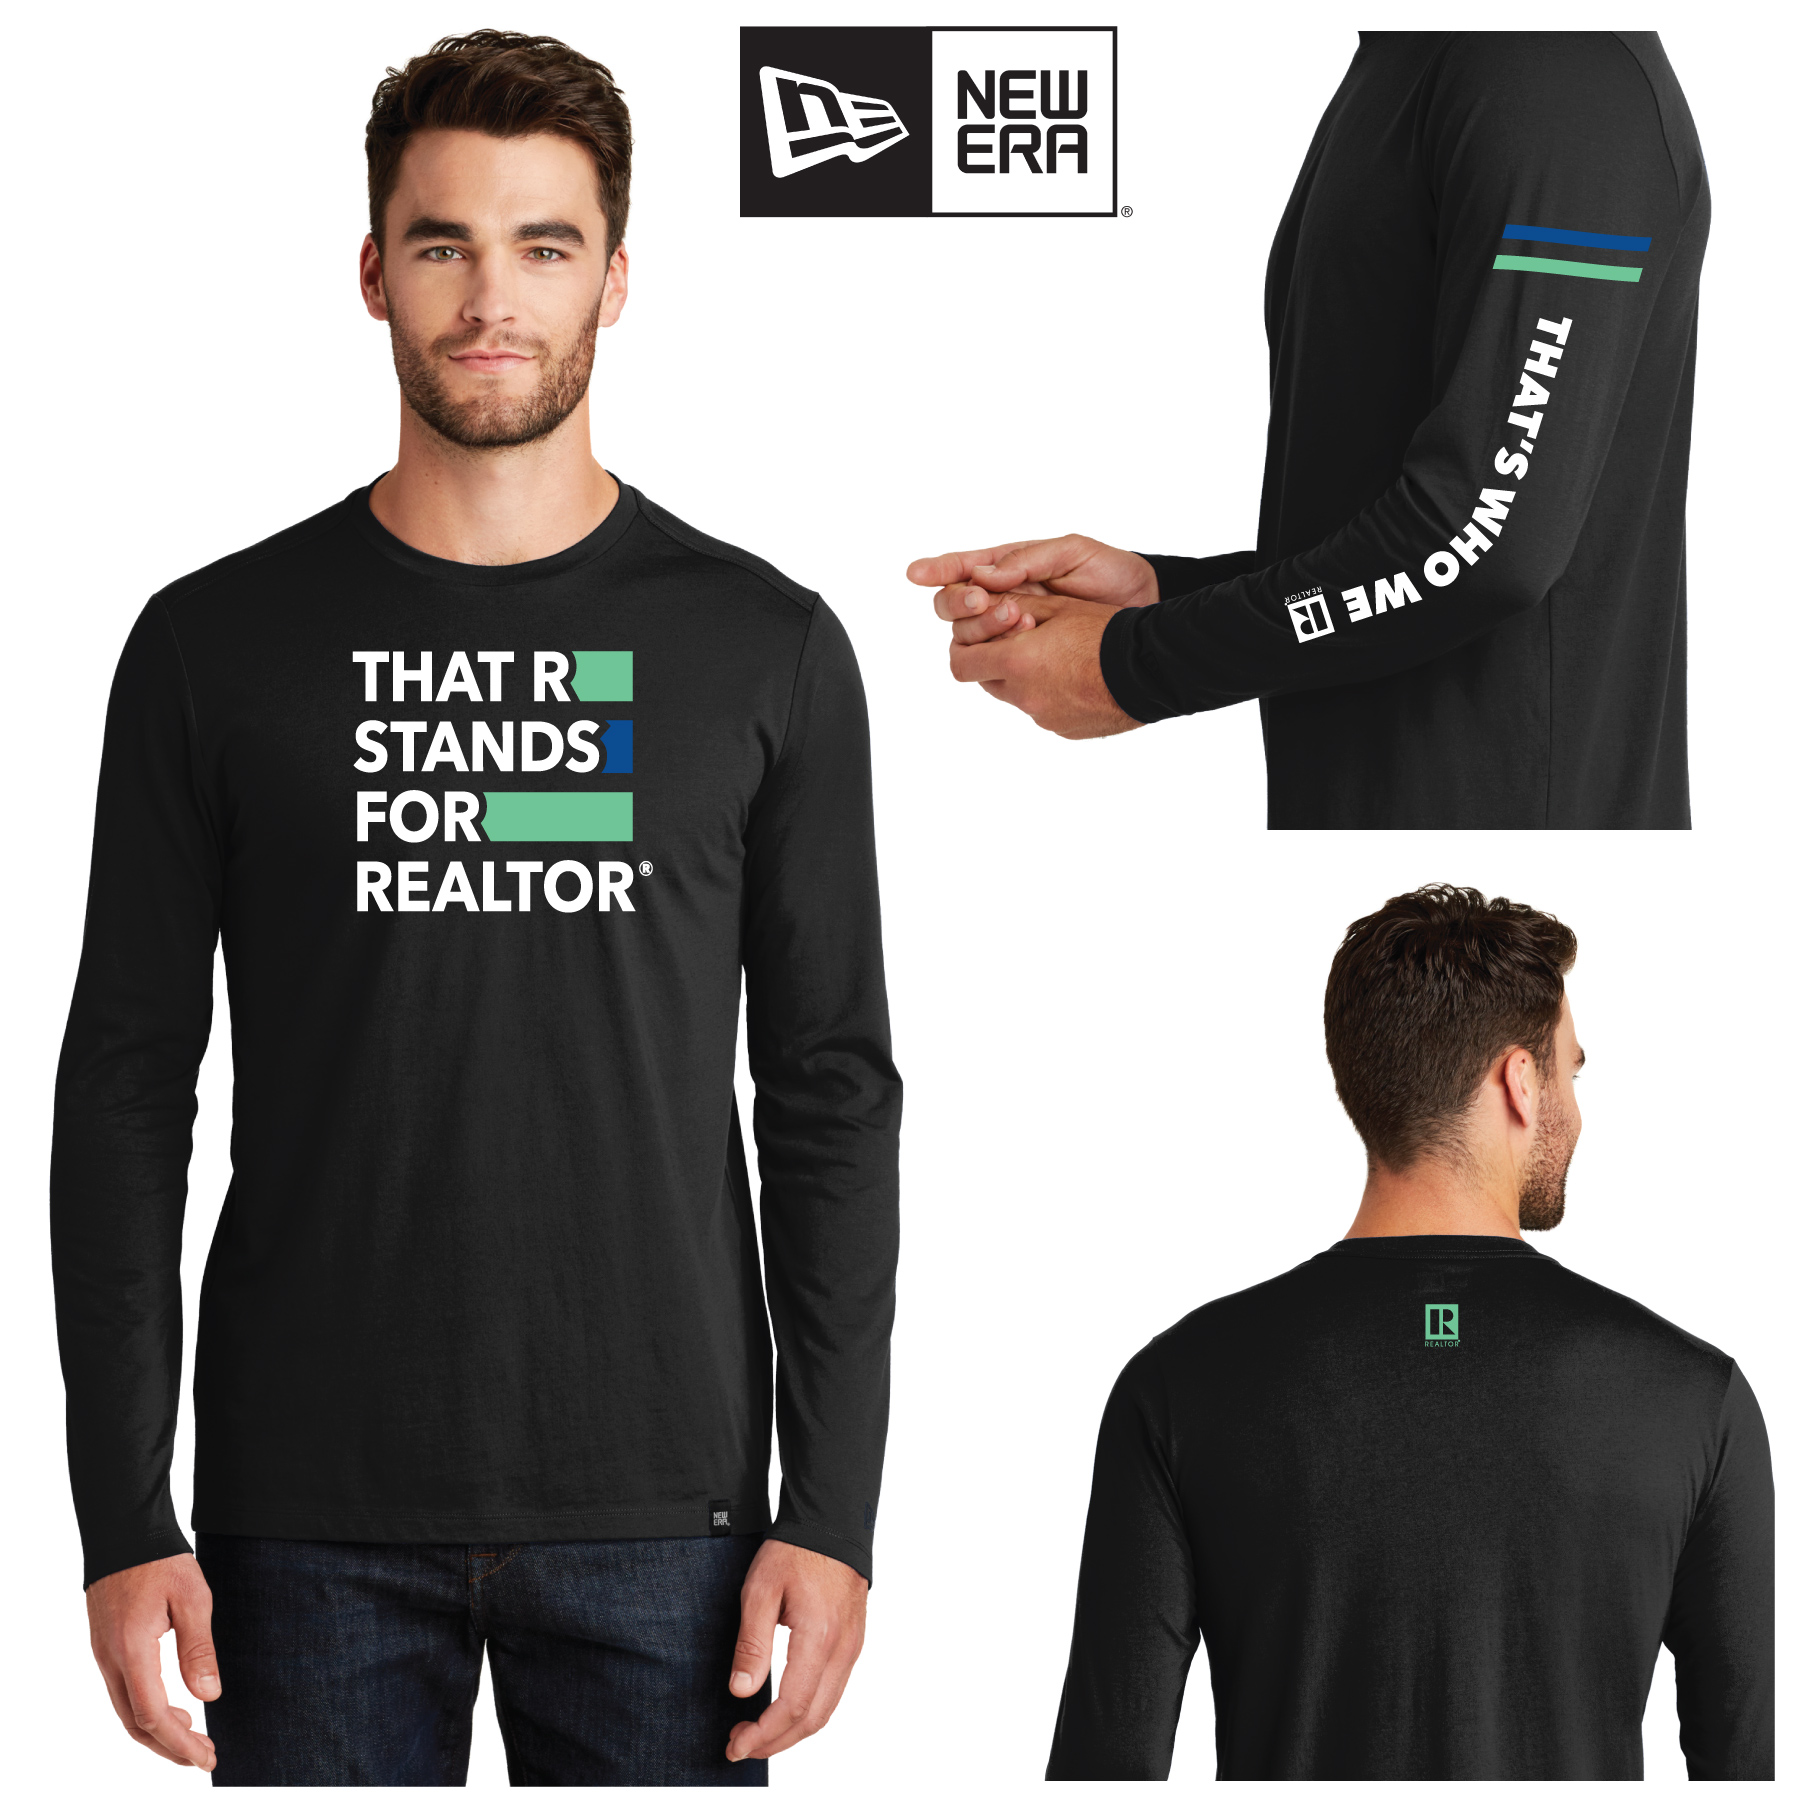 """That R Stands for REALTOR®"" Long Sleeve New Era® Tee Shirt Tees,T-shirt,Tee,Casual,Values,Tees,NewEra,Longs,Sleeves"